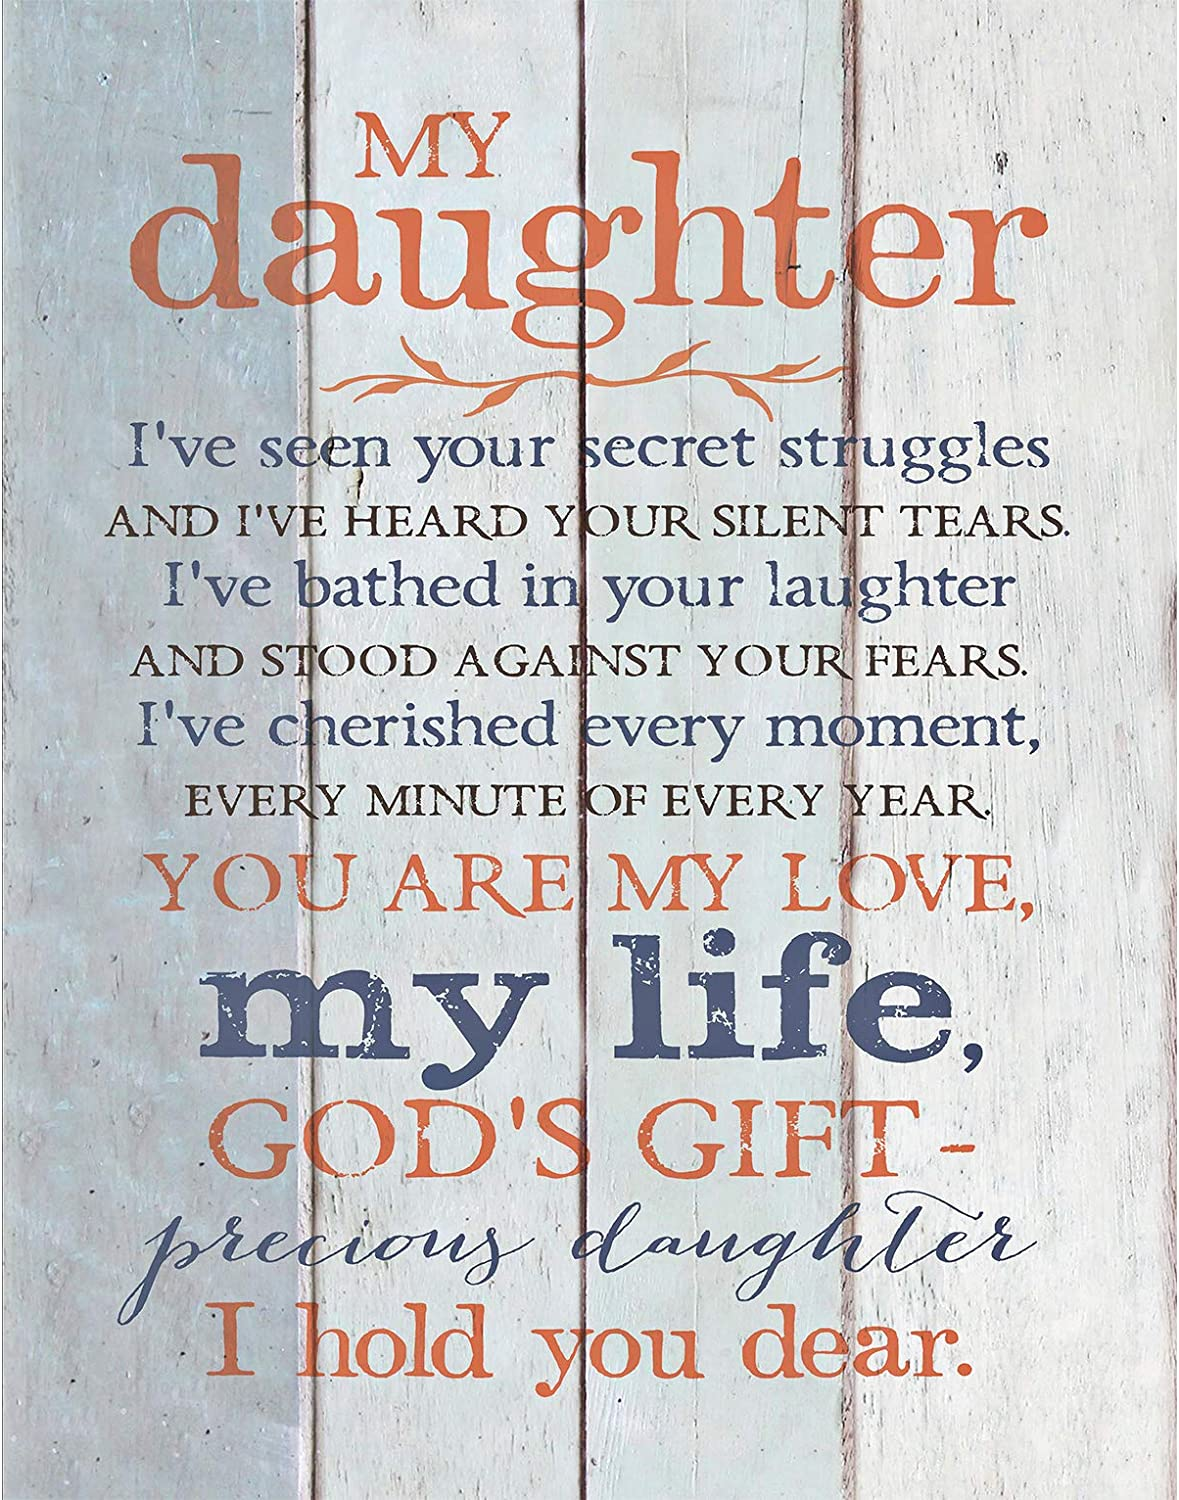 Amazon Com Daughter Wood Plaque With Inspiring Quotes 6x9 Classy Vertical Frame Wall Tabletop Decoration Easel Hanging Hook Christian Family Religious Home Decor Saying My Daughter Home Kitchen